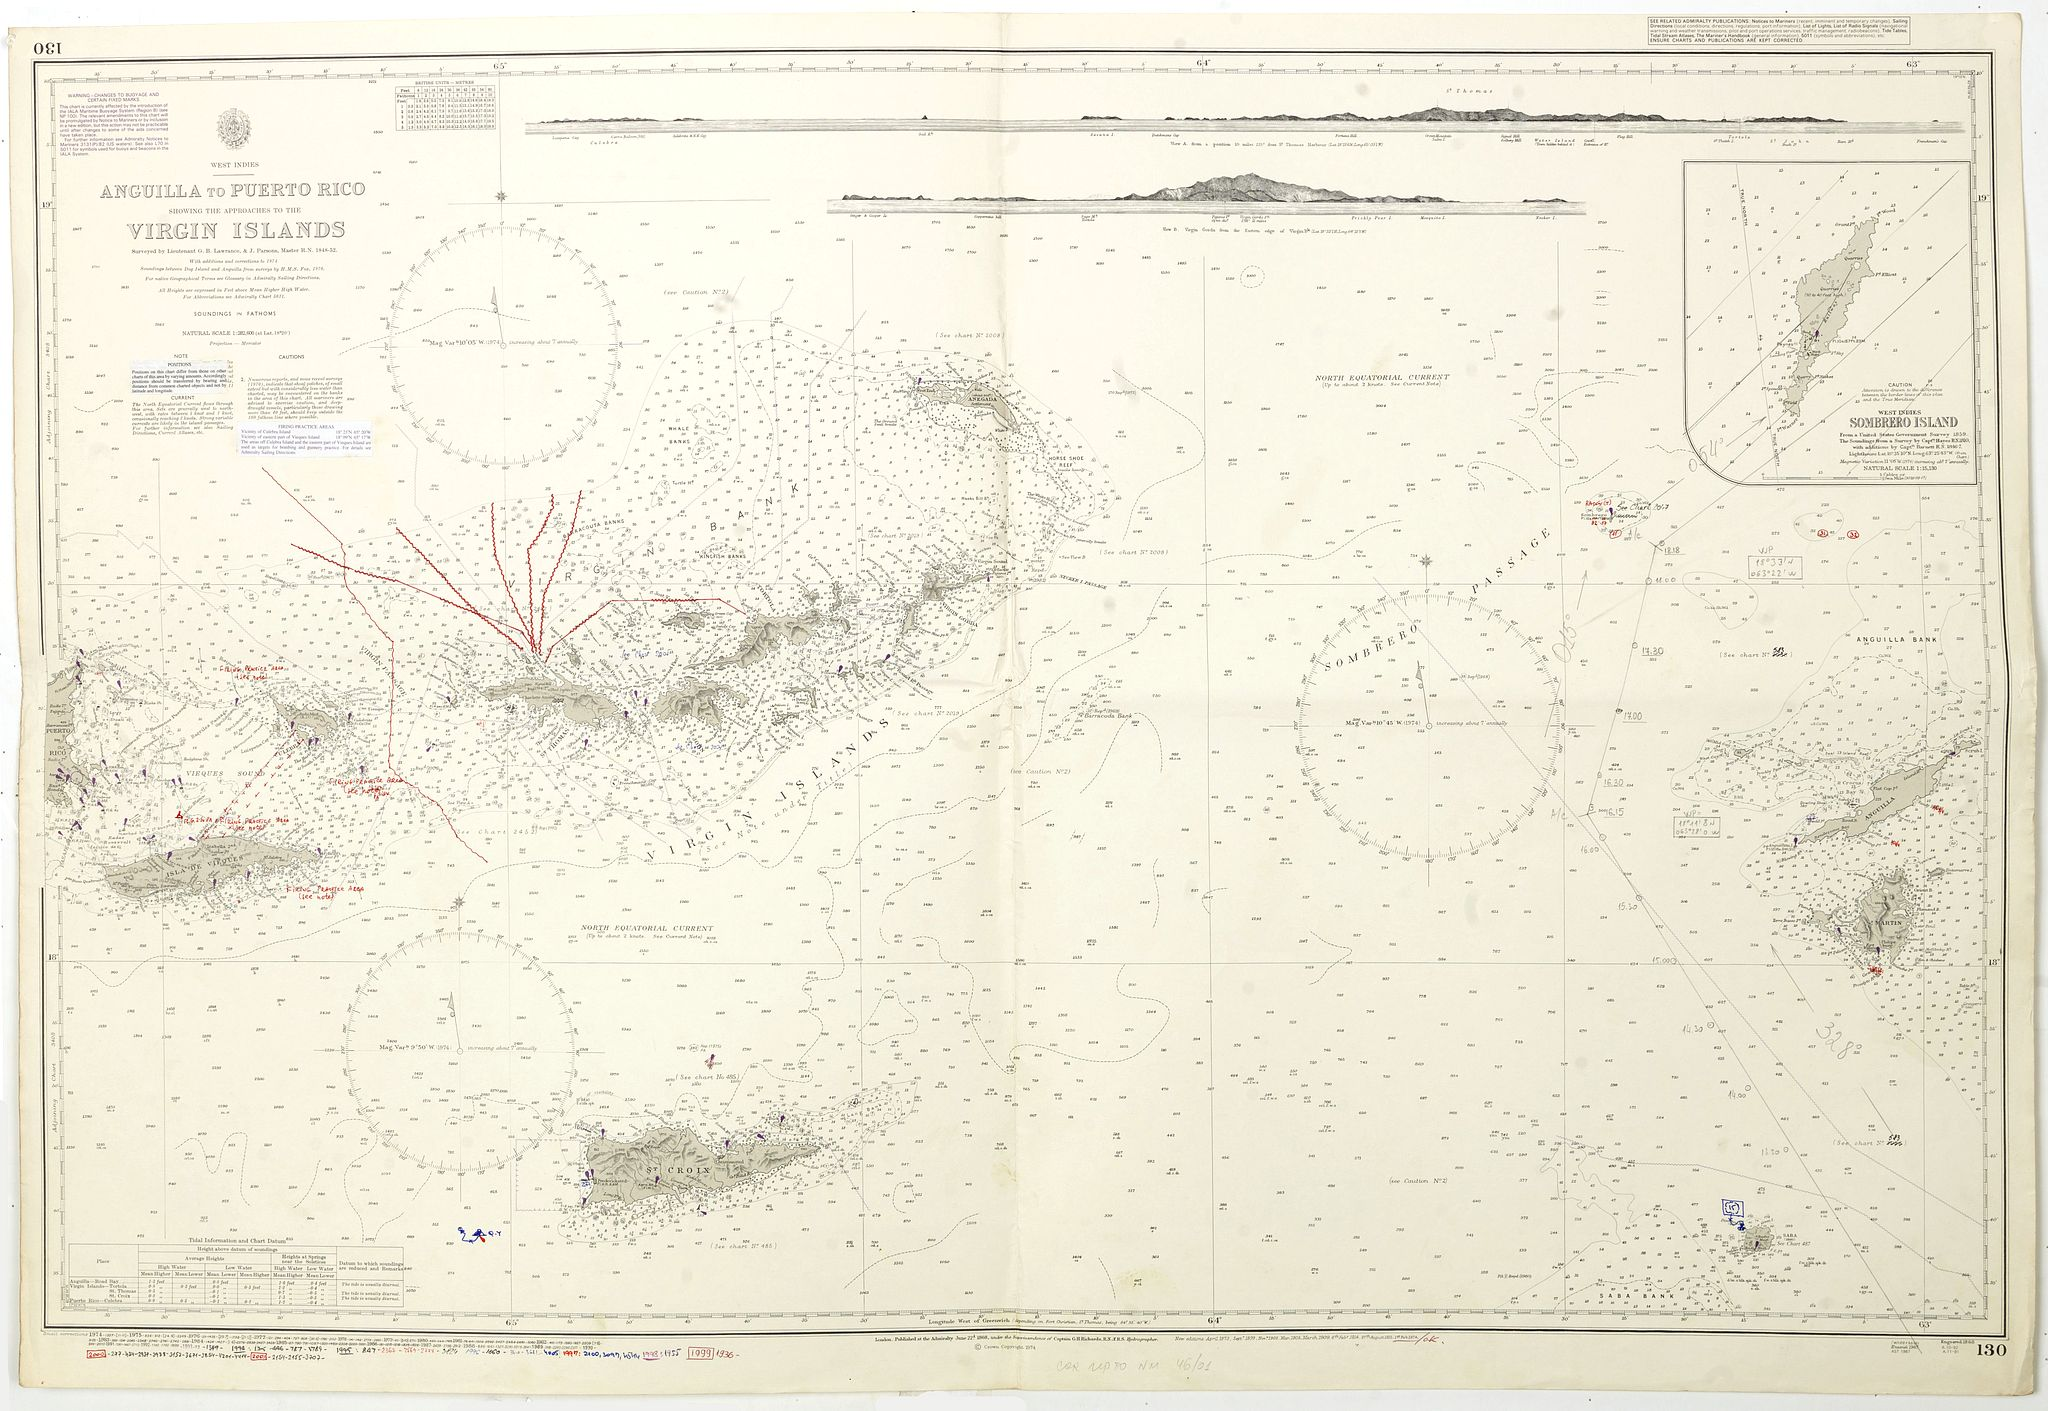 HYDROGRAPHIC OFFICE OF THE ADMIRALTY. -  West Indies Anguilla to Puerto Rico showing the approaches to the Virgin Islands . . .